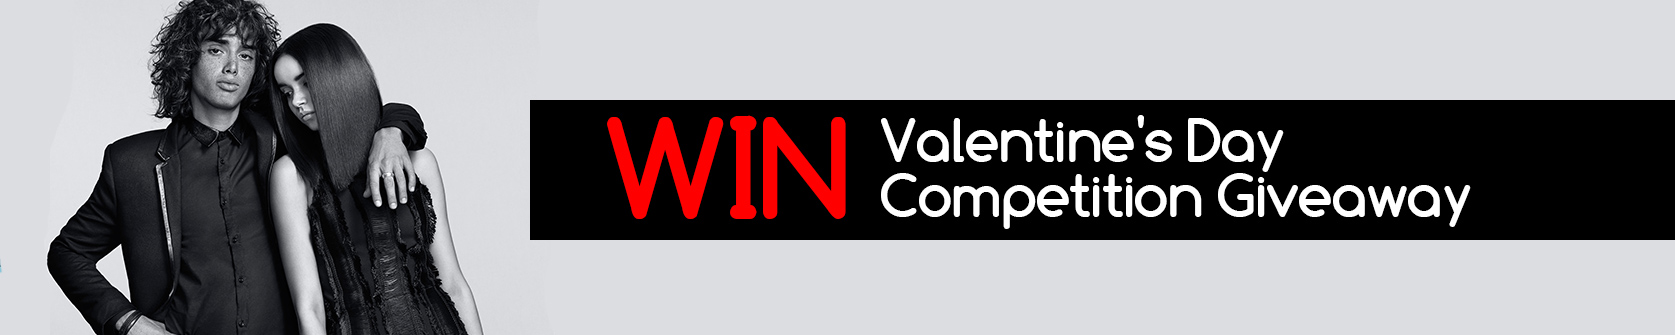 win-valentines-day-competition-giveaway-banner